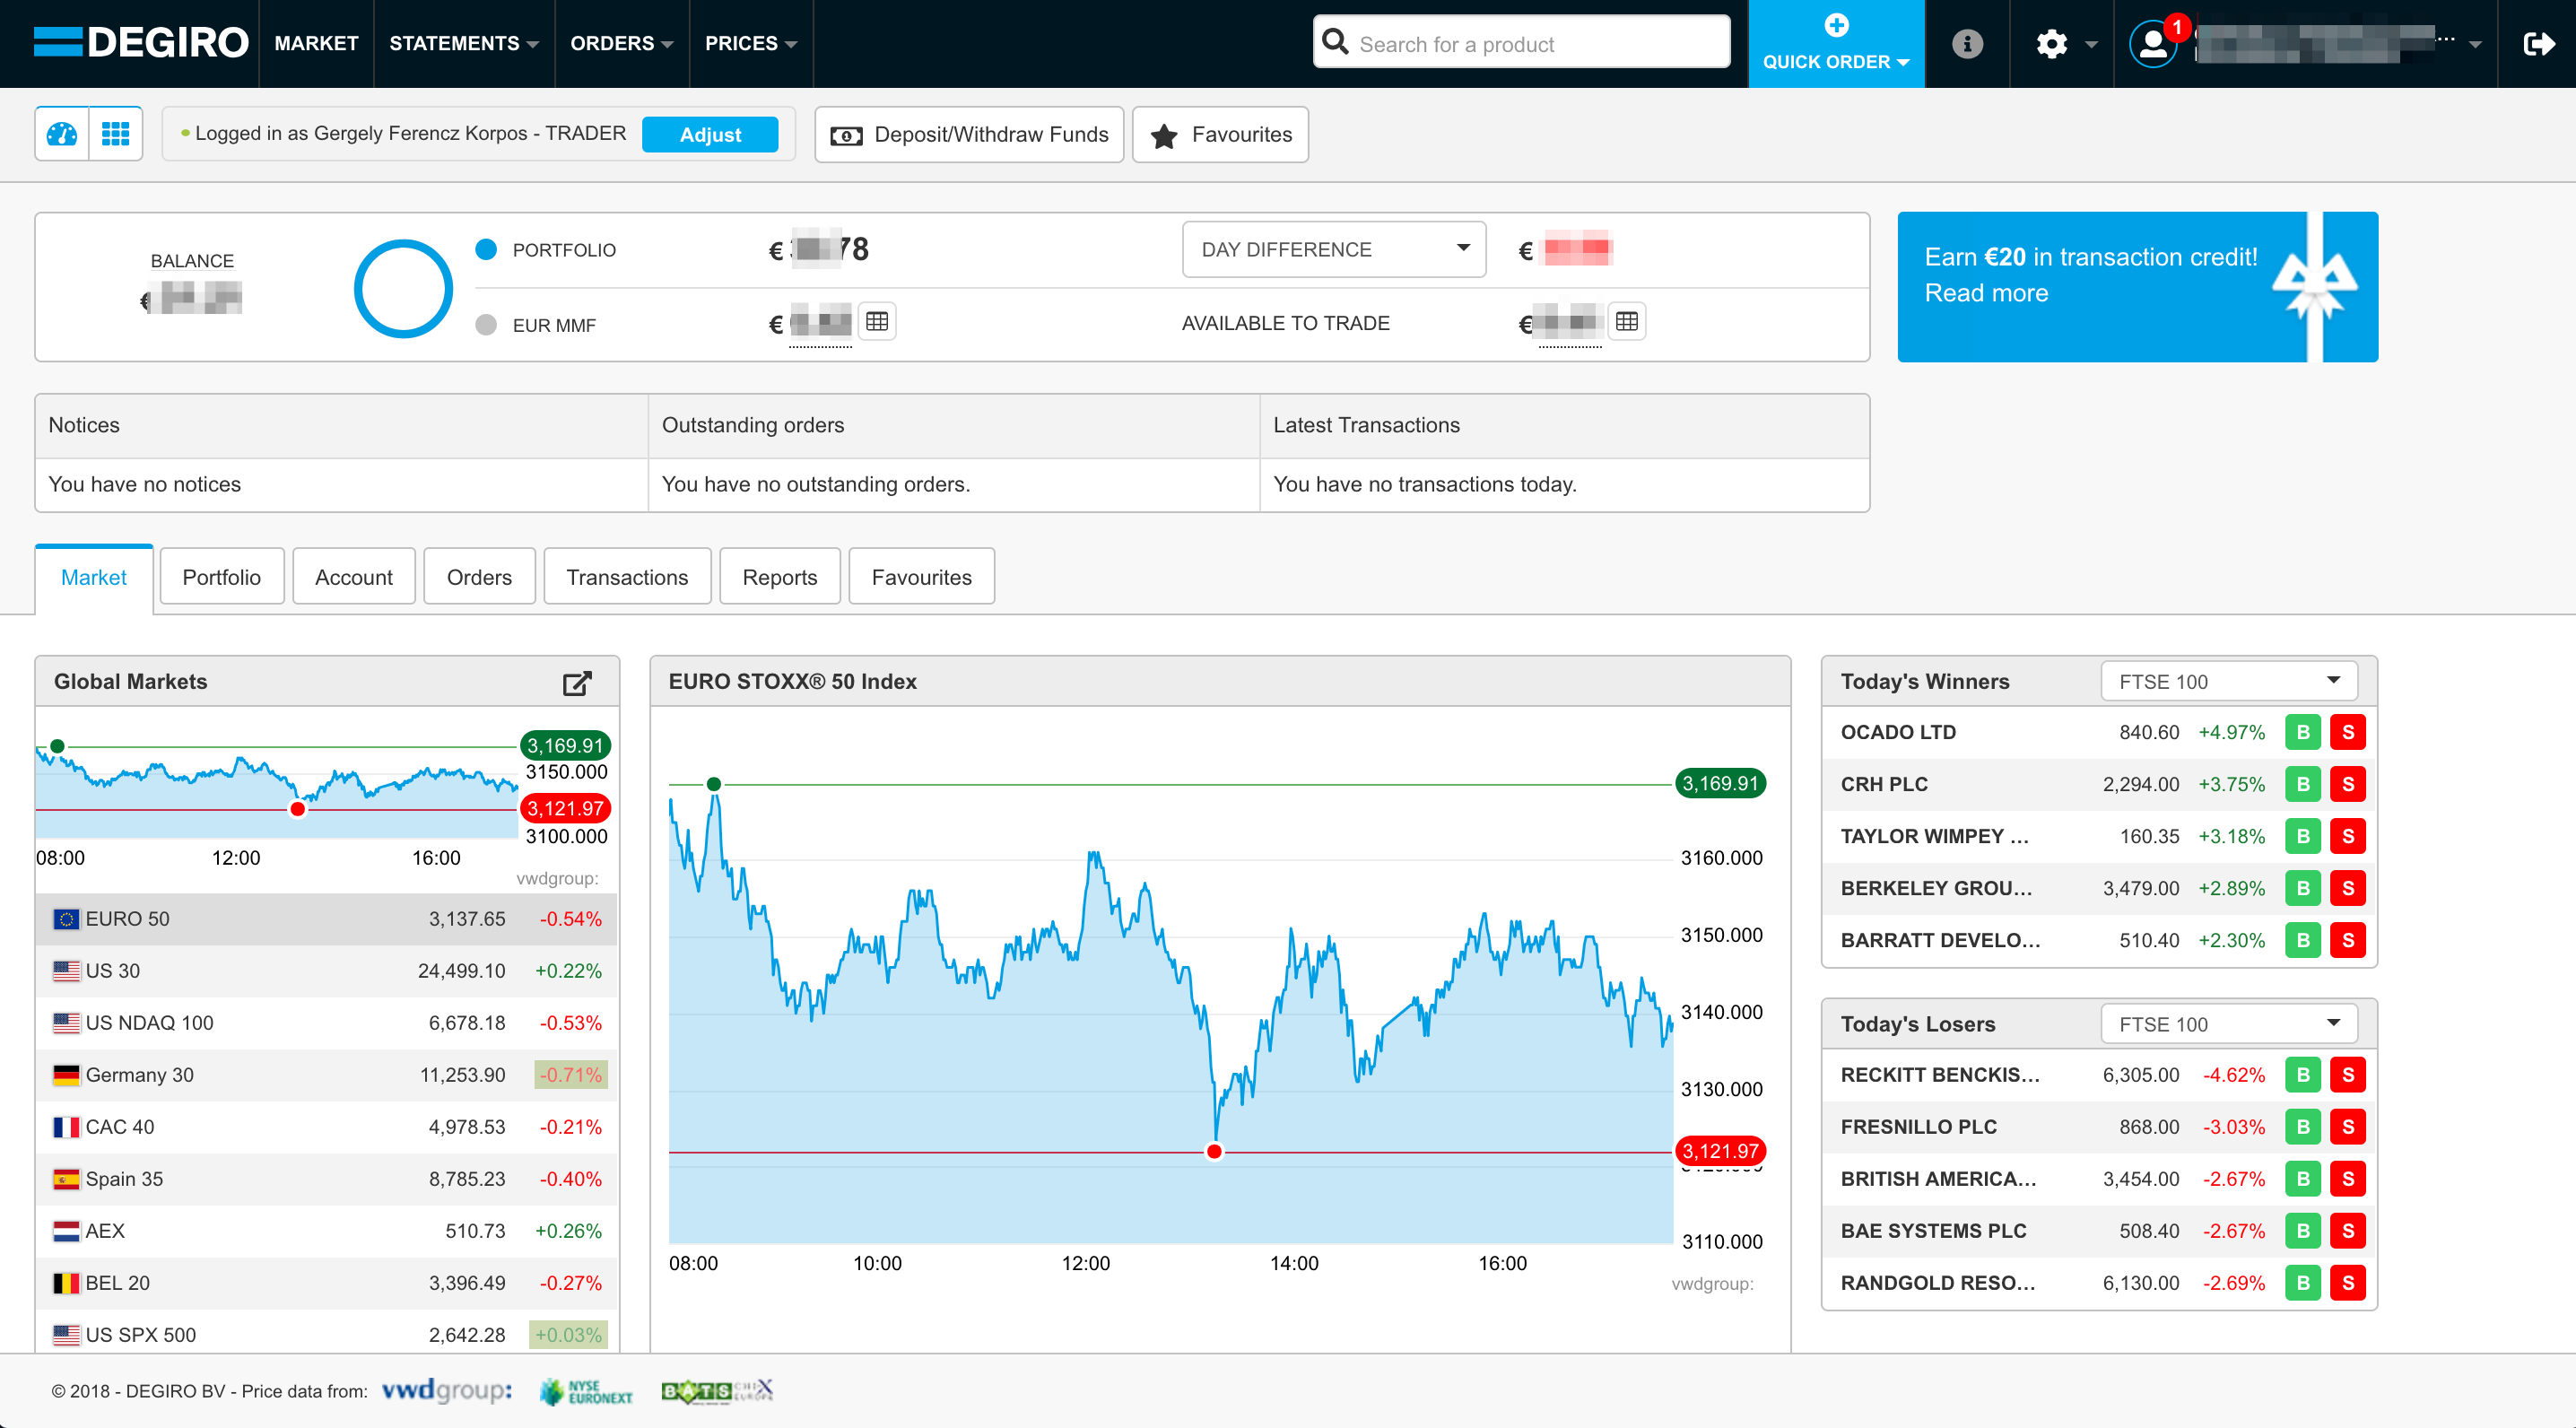 Web trading platform of DEGIRO, a BGL BNP Paribas alternative